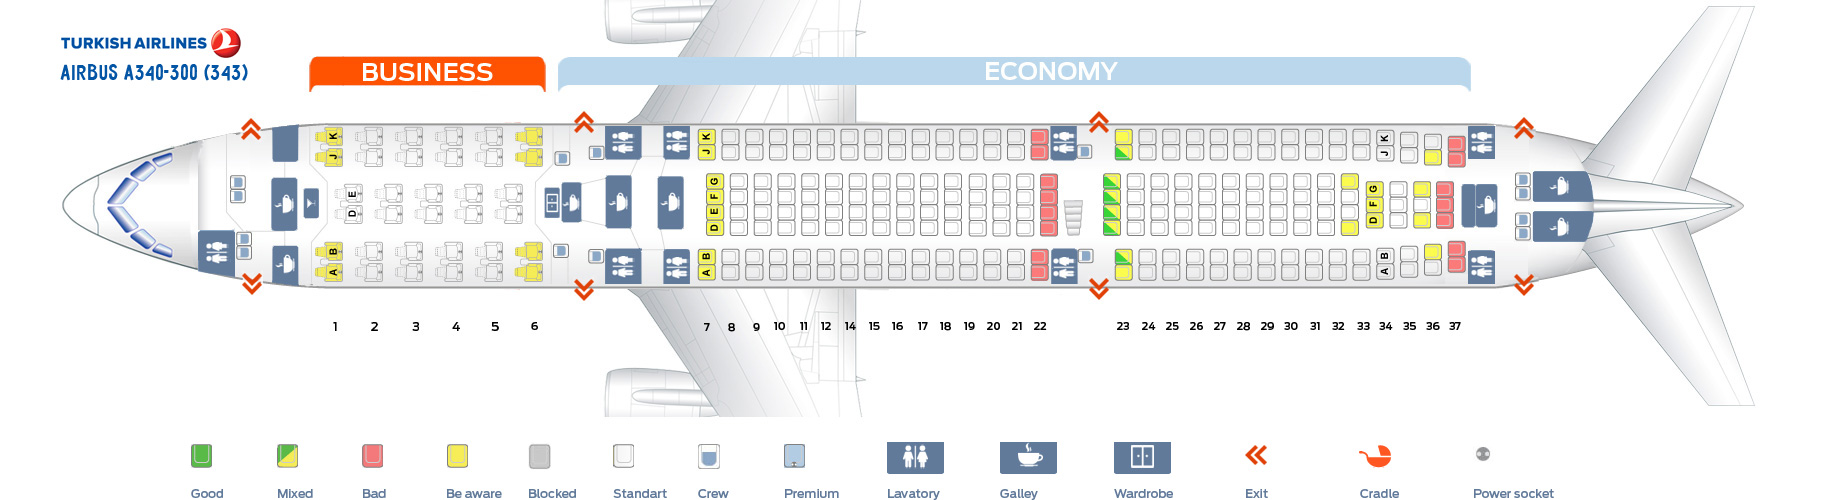 Seat Map Airbus A340-300 Turkish Airlines